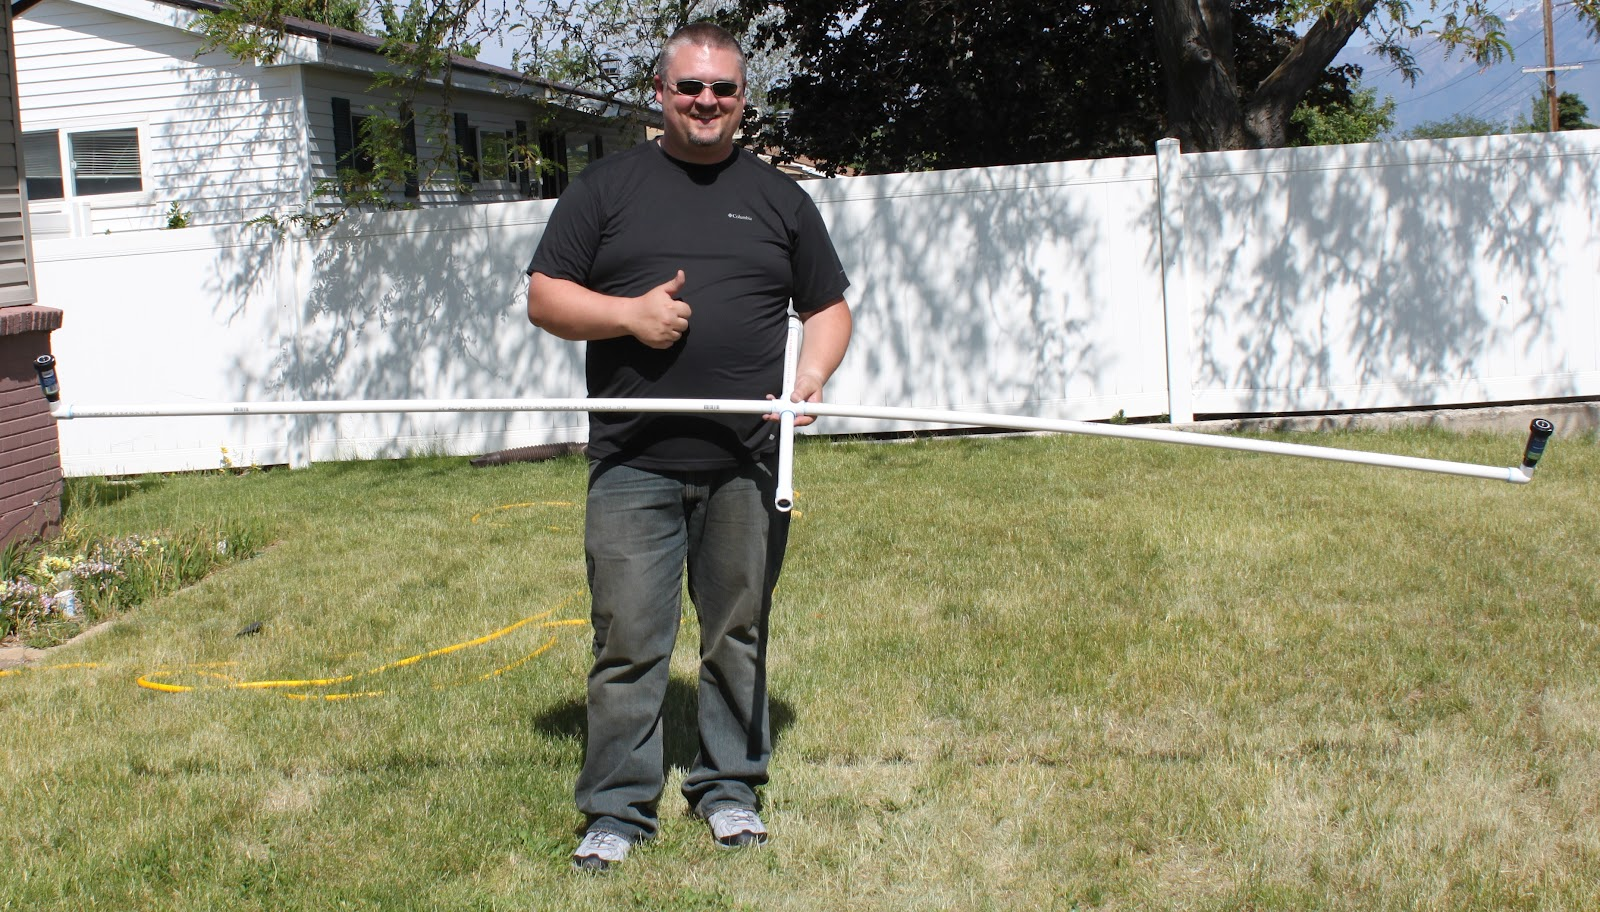 Make a simple and inexpensive DIY Sprinkler made from PVC Pipe. Water your lawn in half the time without a sprinkler system. Enjoy your green lawn.